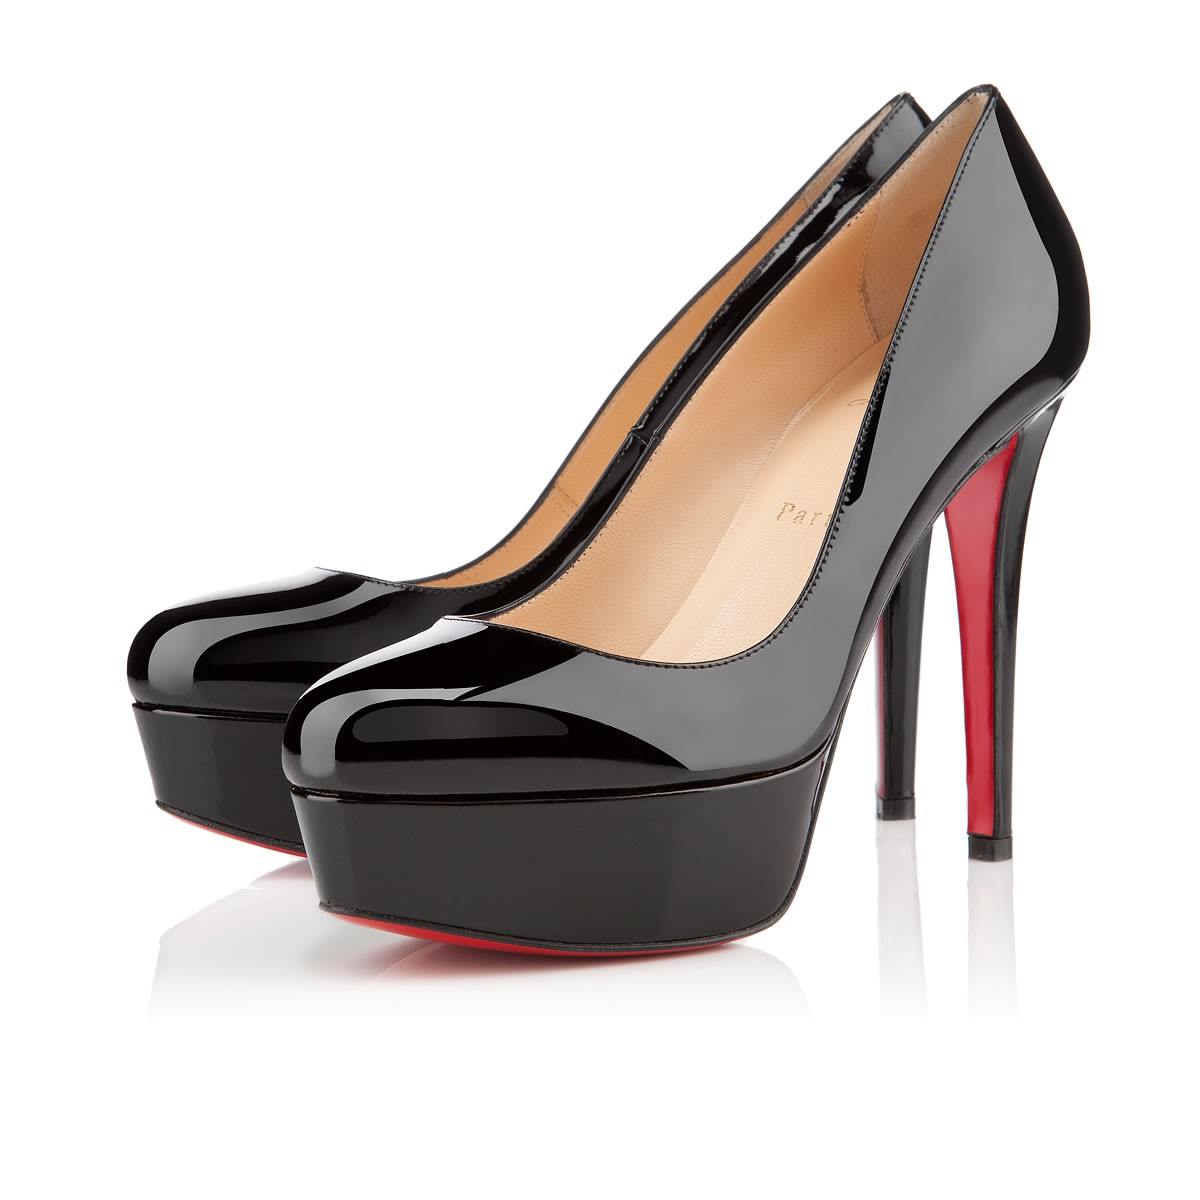 8a59a0c6fb1f Christian Louboutin 11 Black Patent Leather